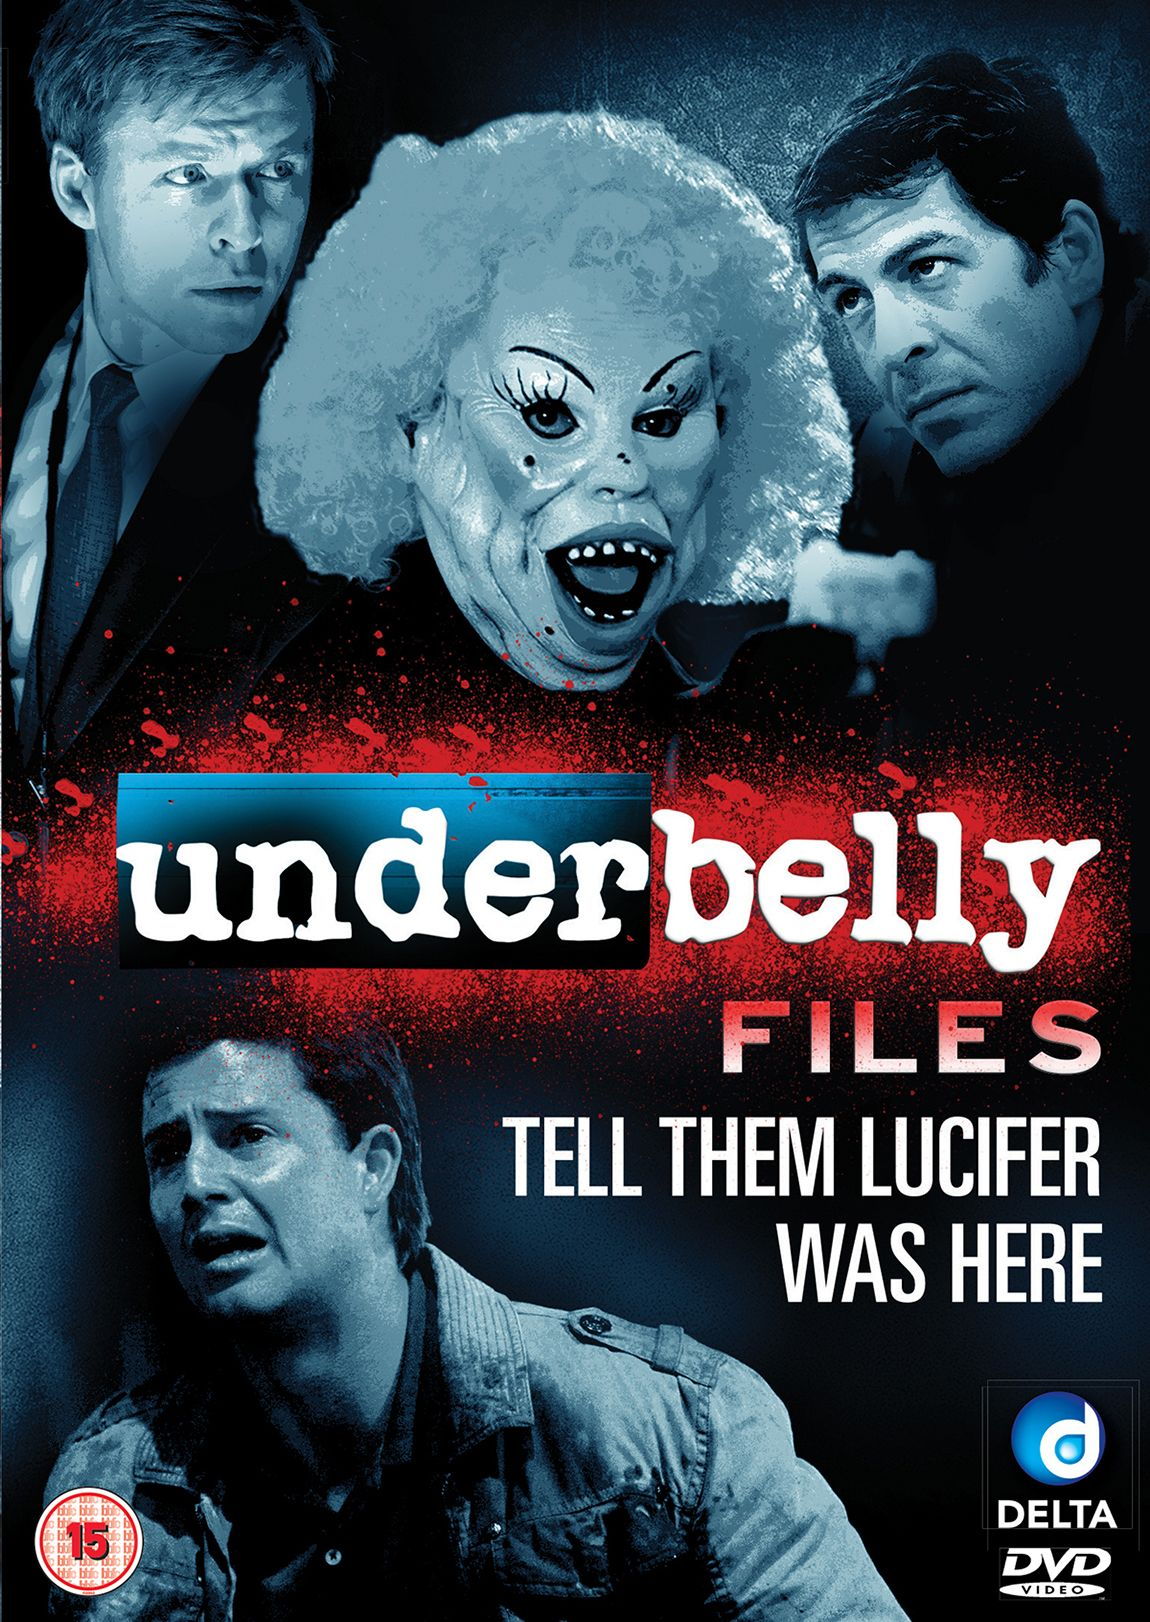 Tell them Lucifer was here From the Underbelly Movie